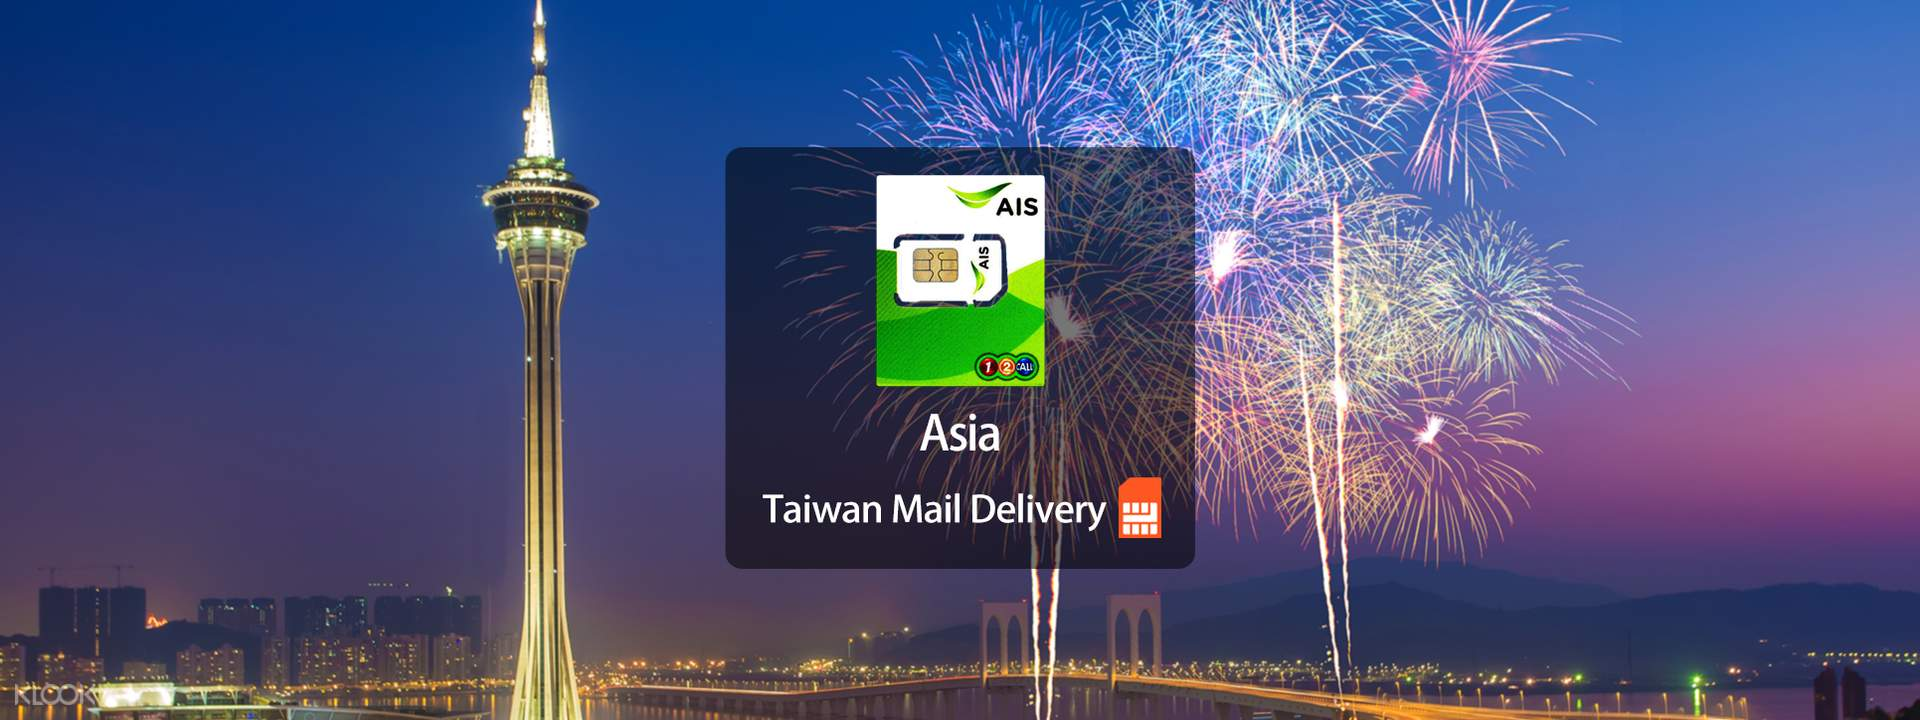 4G SIM Card (Taiwan Home Delivery) for Asia from AIS - Klook